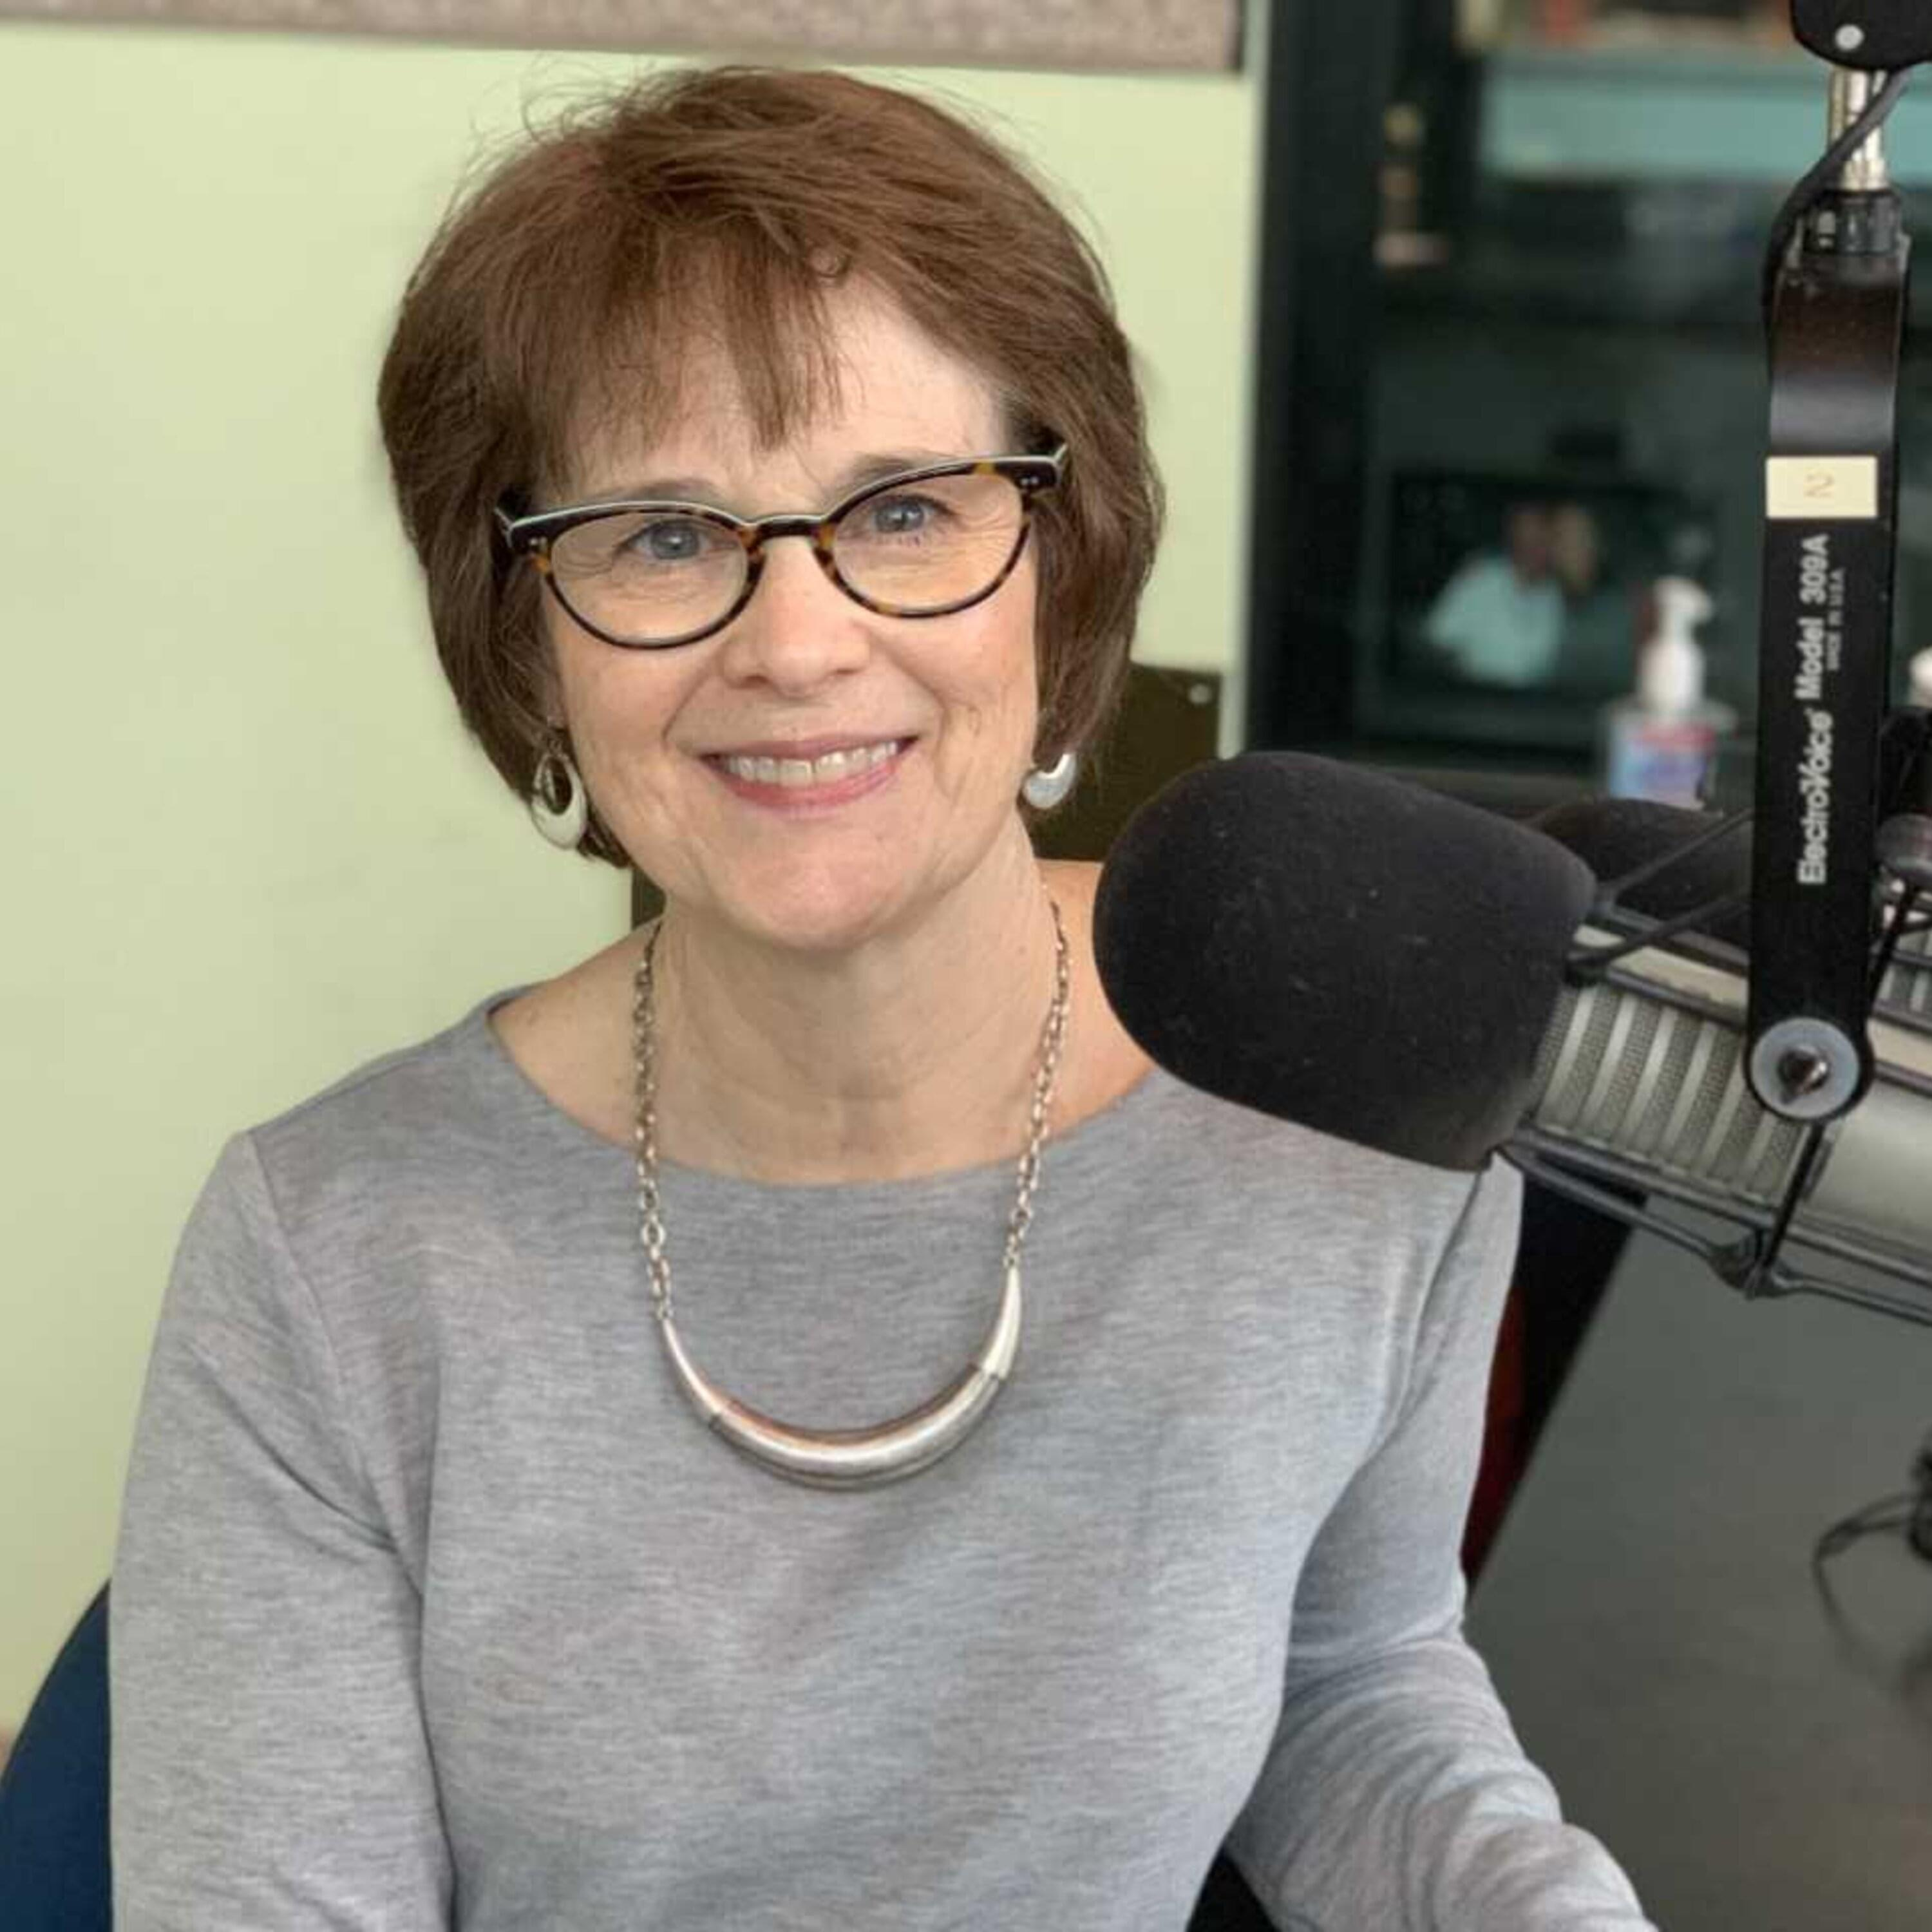 LISTEN: Decatur Area Arts Council's Sue Powell on a Very Busy Upcoming October